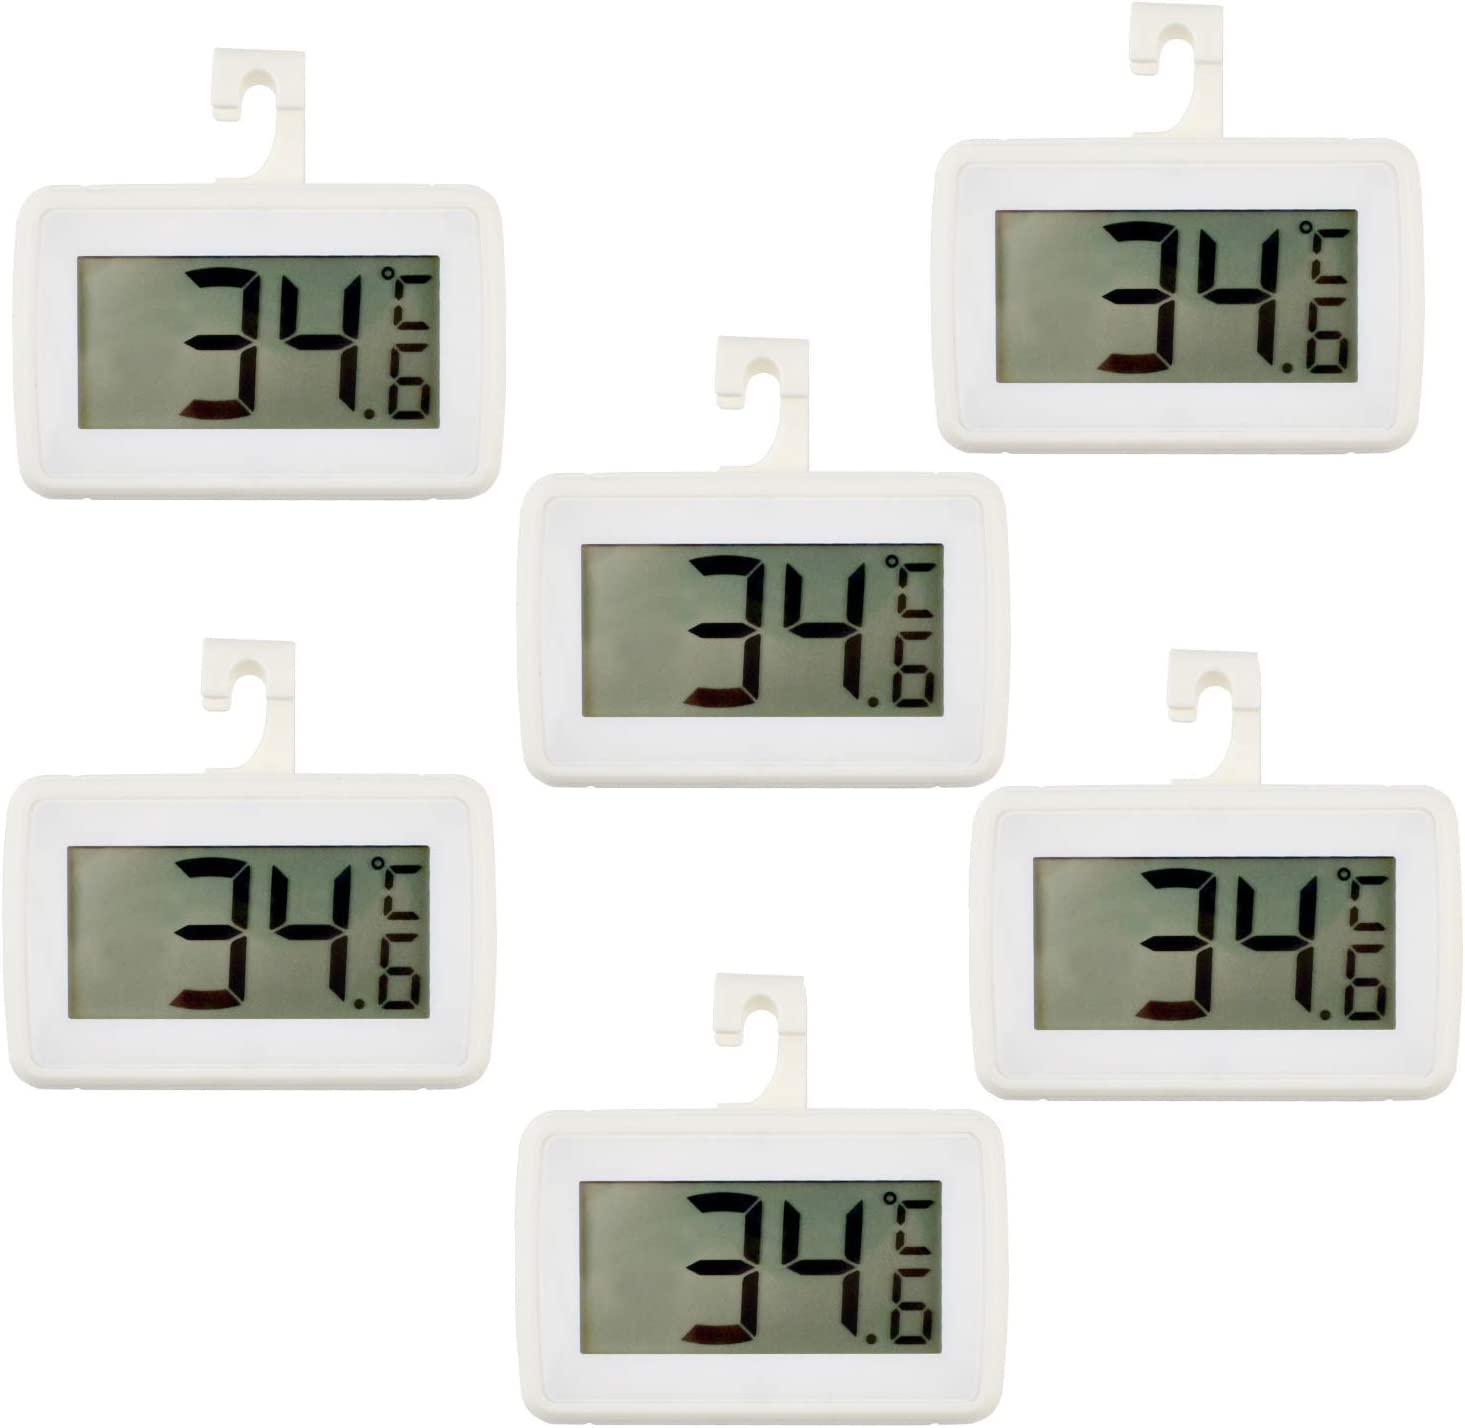 6 PACK Digital Refrigerator Thermometer, Waterproof Freezer Room Thermometer,High Precision Fridge Alarm Thermometer with Hook for Kitchen Home,°C/°F Convertible